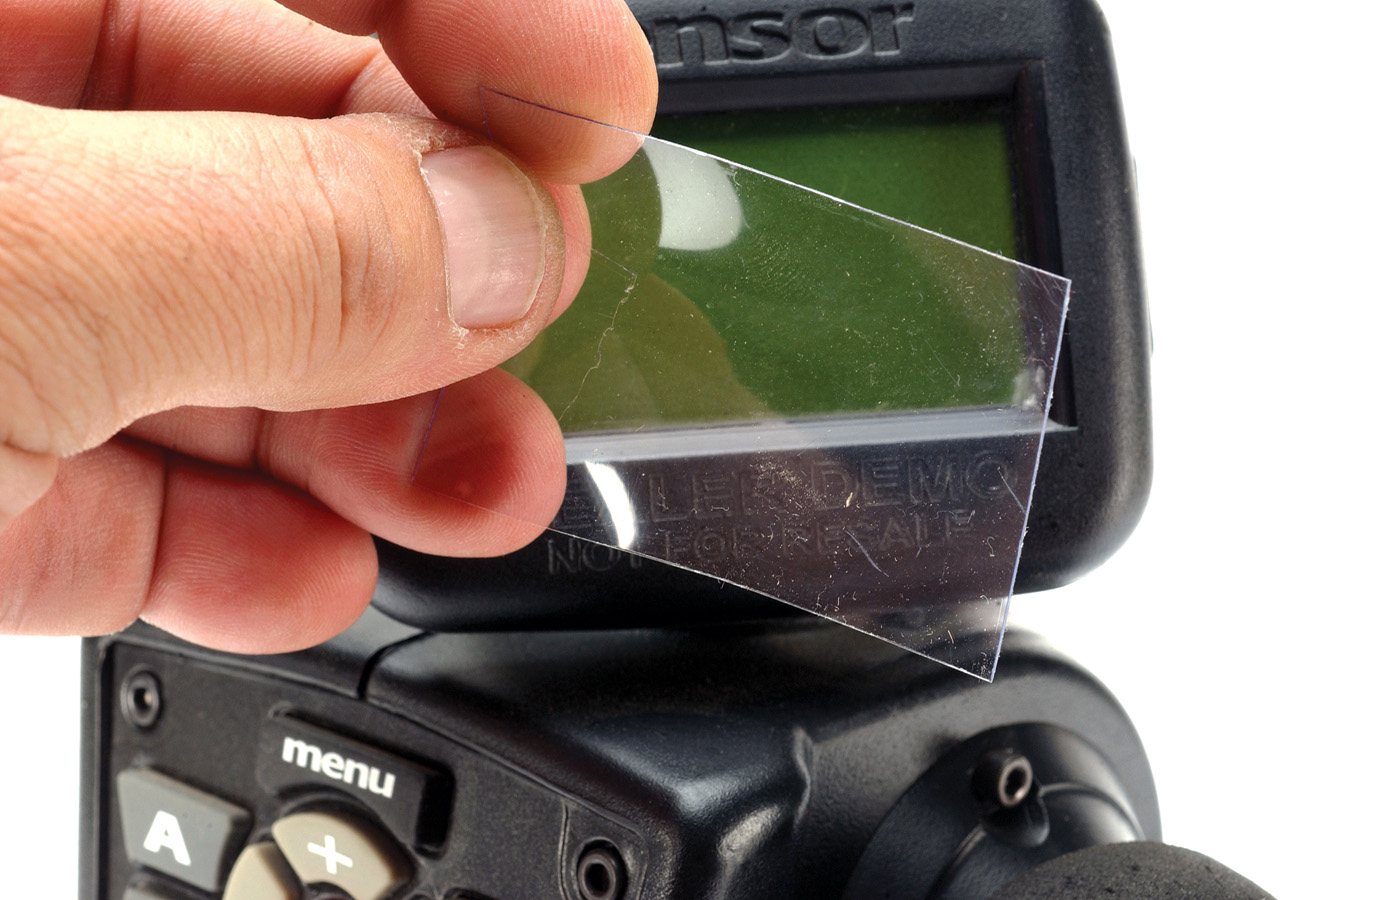 Radio LCD Protection [Top 25 Pit Tips]